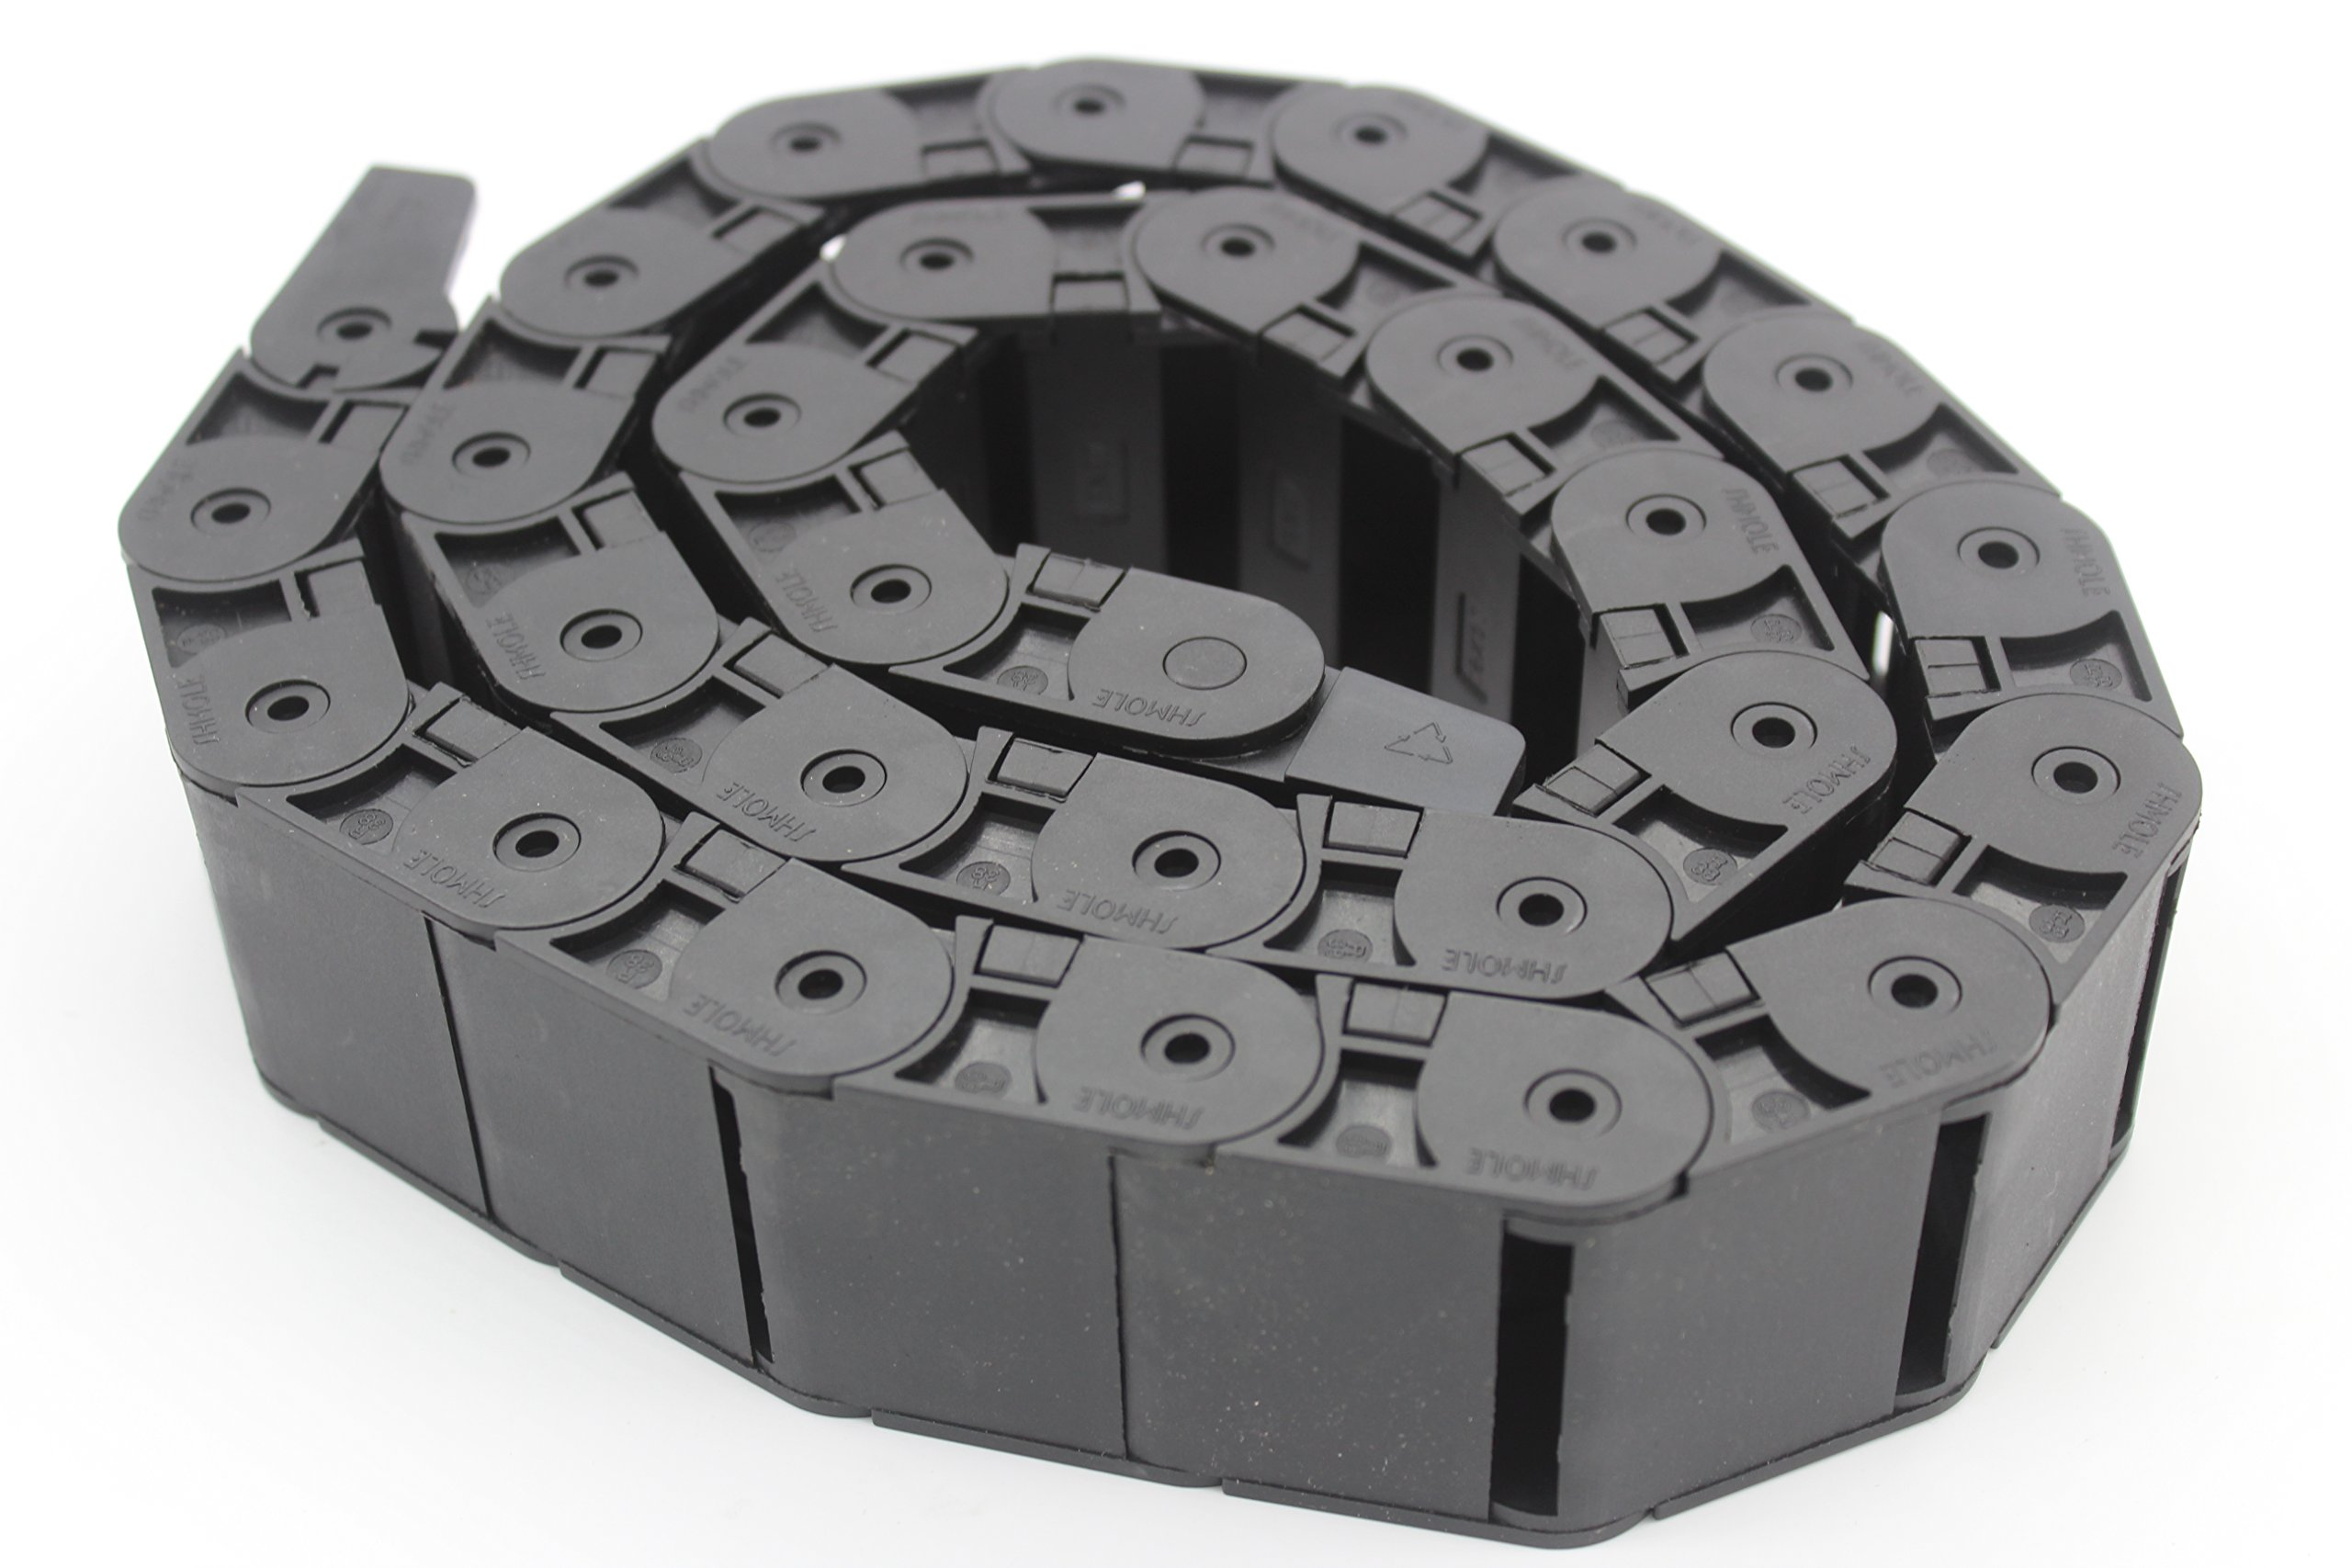 PlasticTowline CNC Machine Tools Cable Carrier Drag Chain (18X37mm)